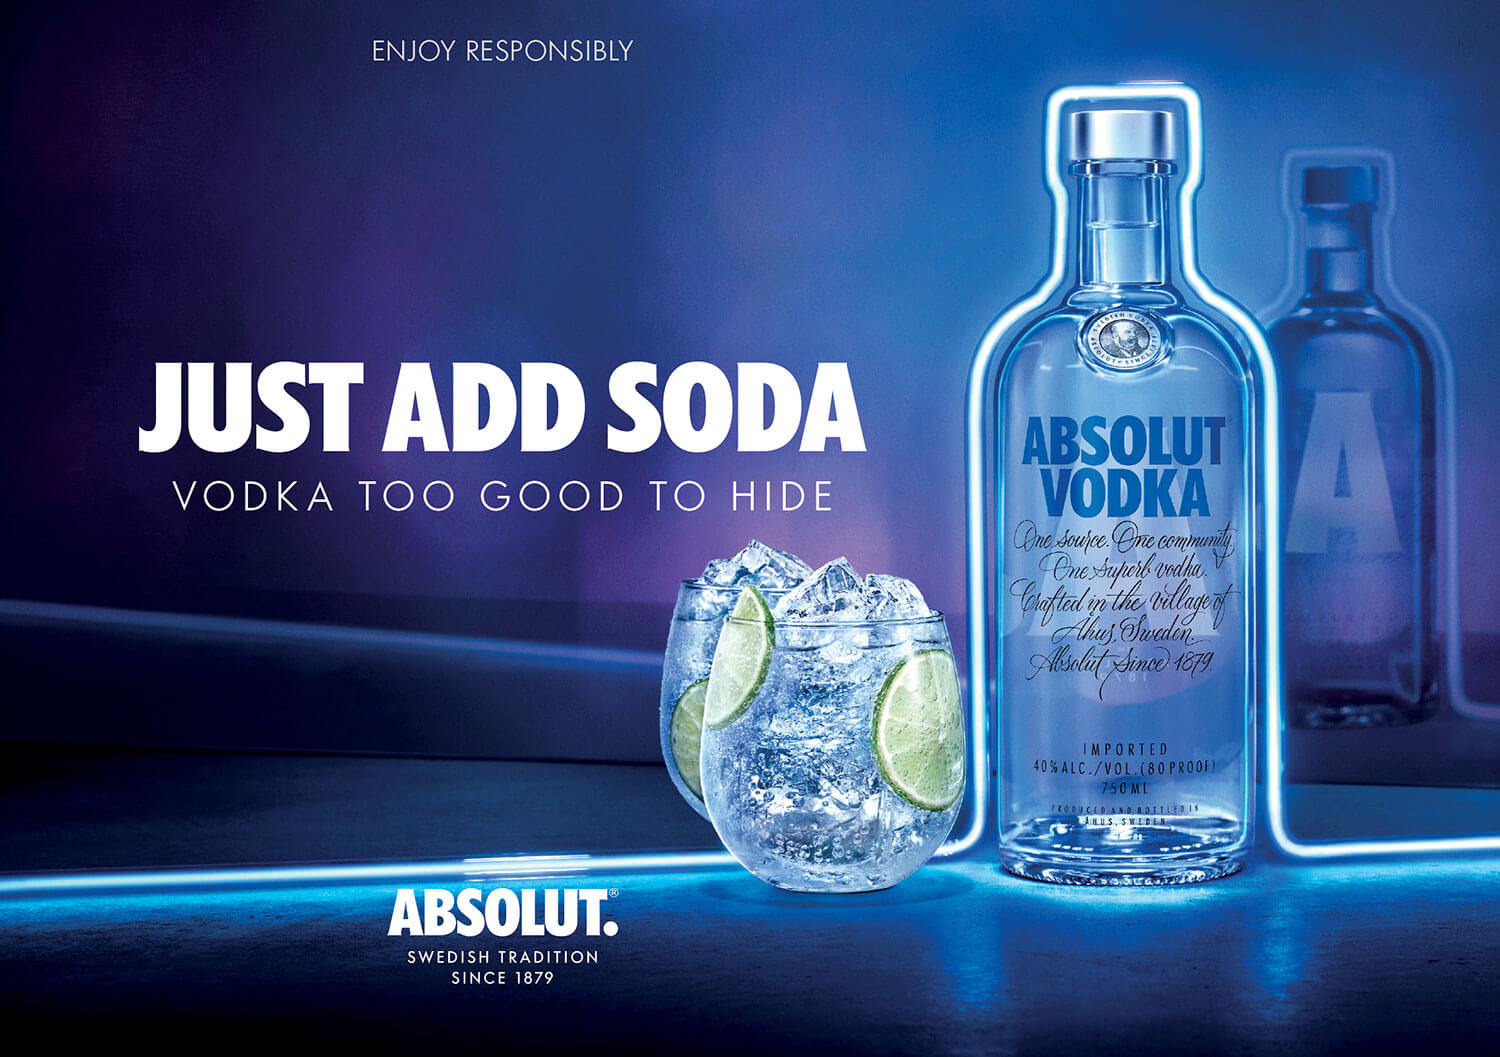 Key visual with bottle and drink for Absolut Vodka Just add soda campaign